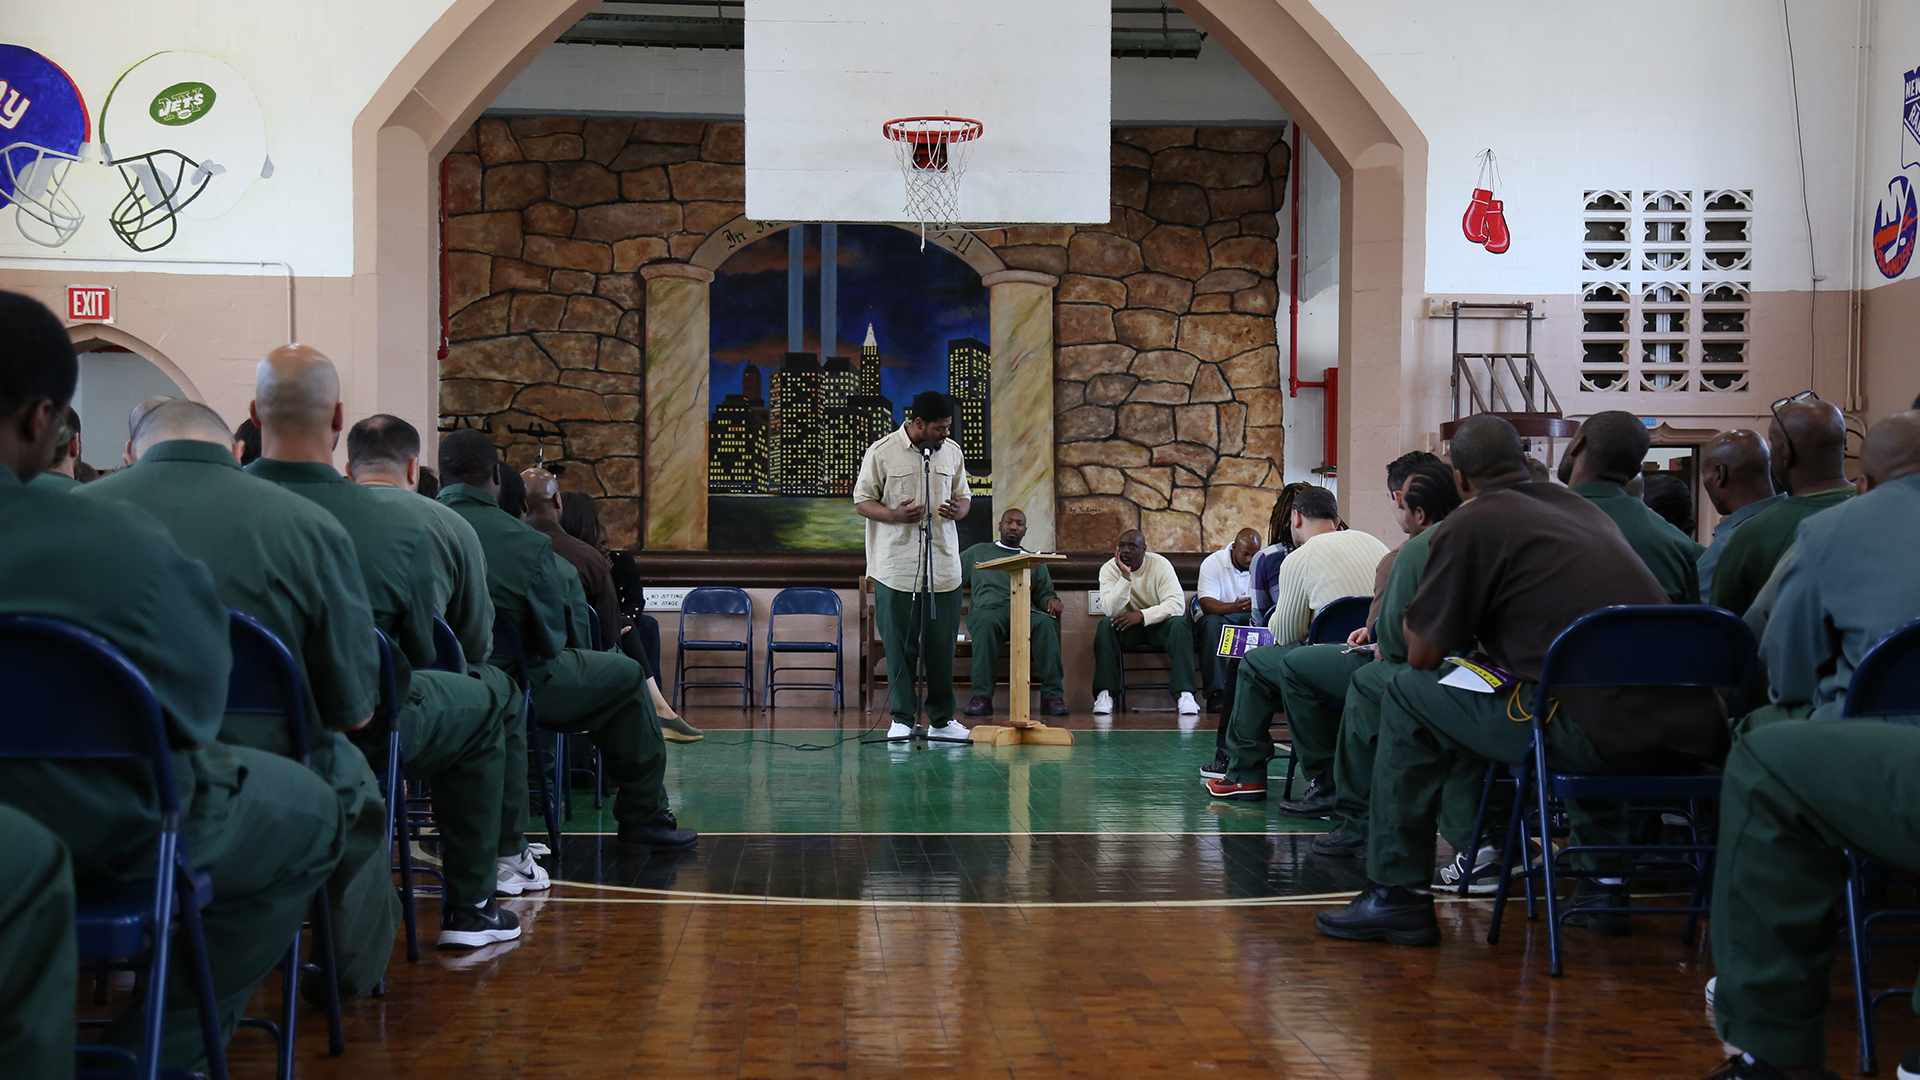 NYU students in gymnasium for event at Wallkill Correctional Facility